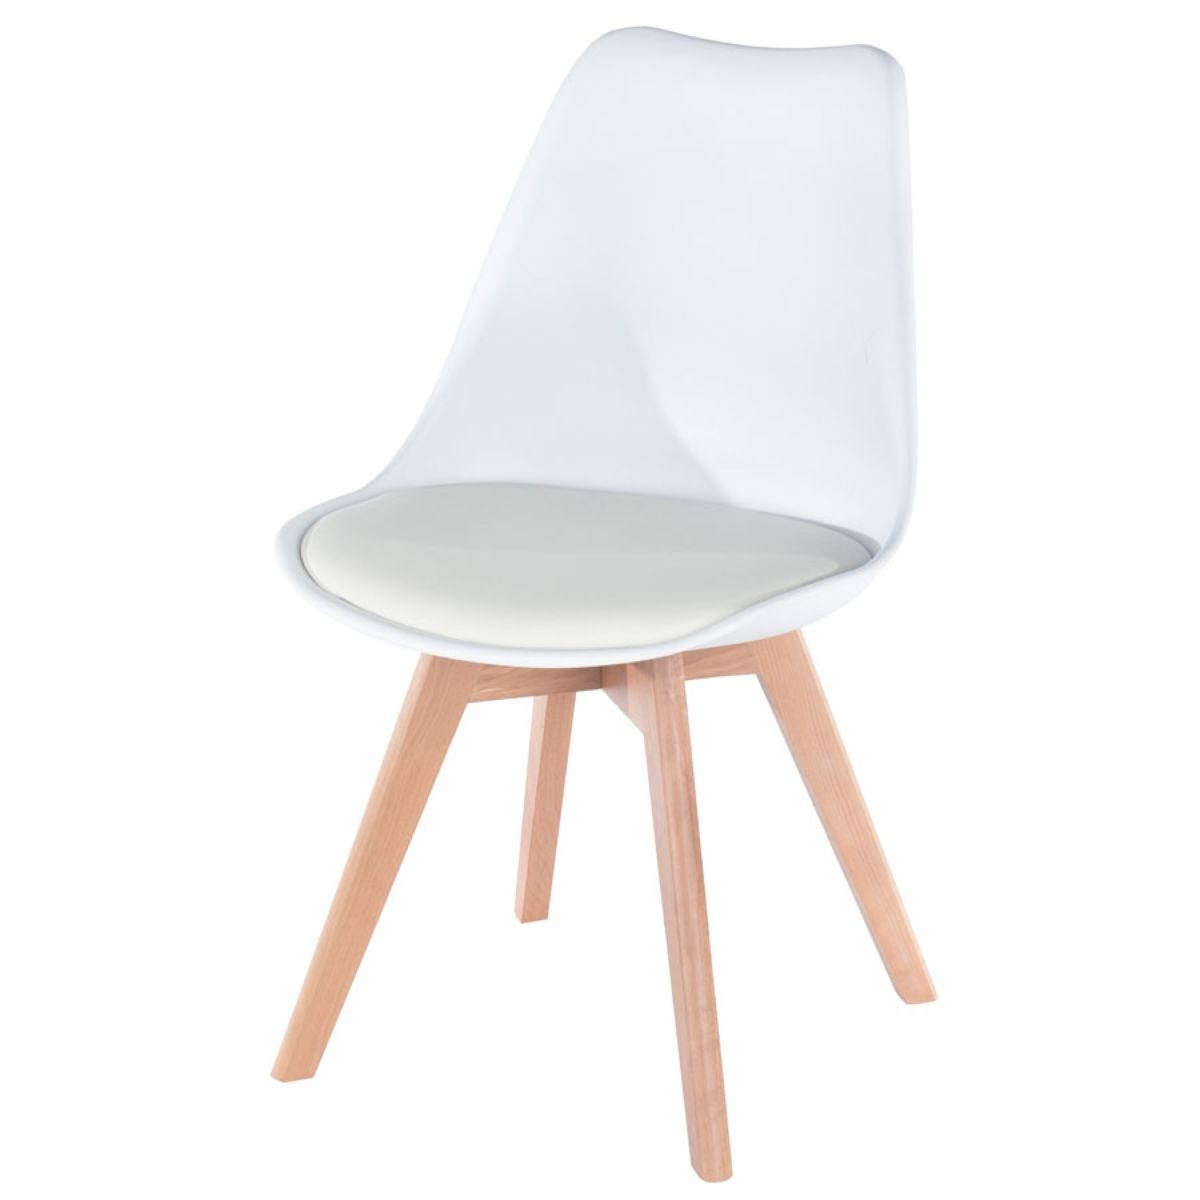 Roloku Plastic Padded Pair of Seats - White